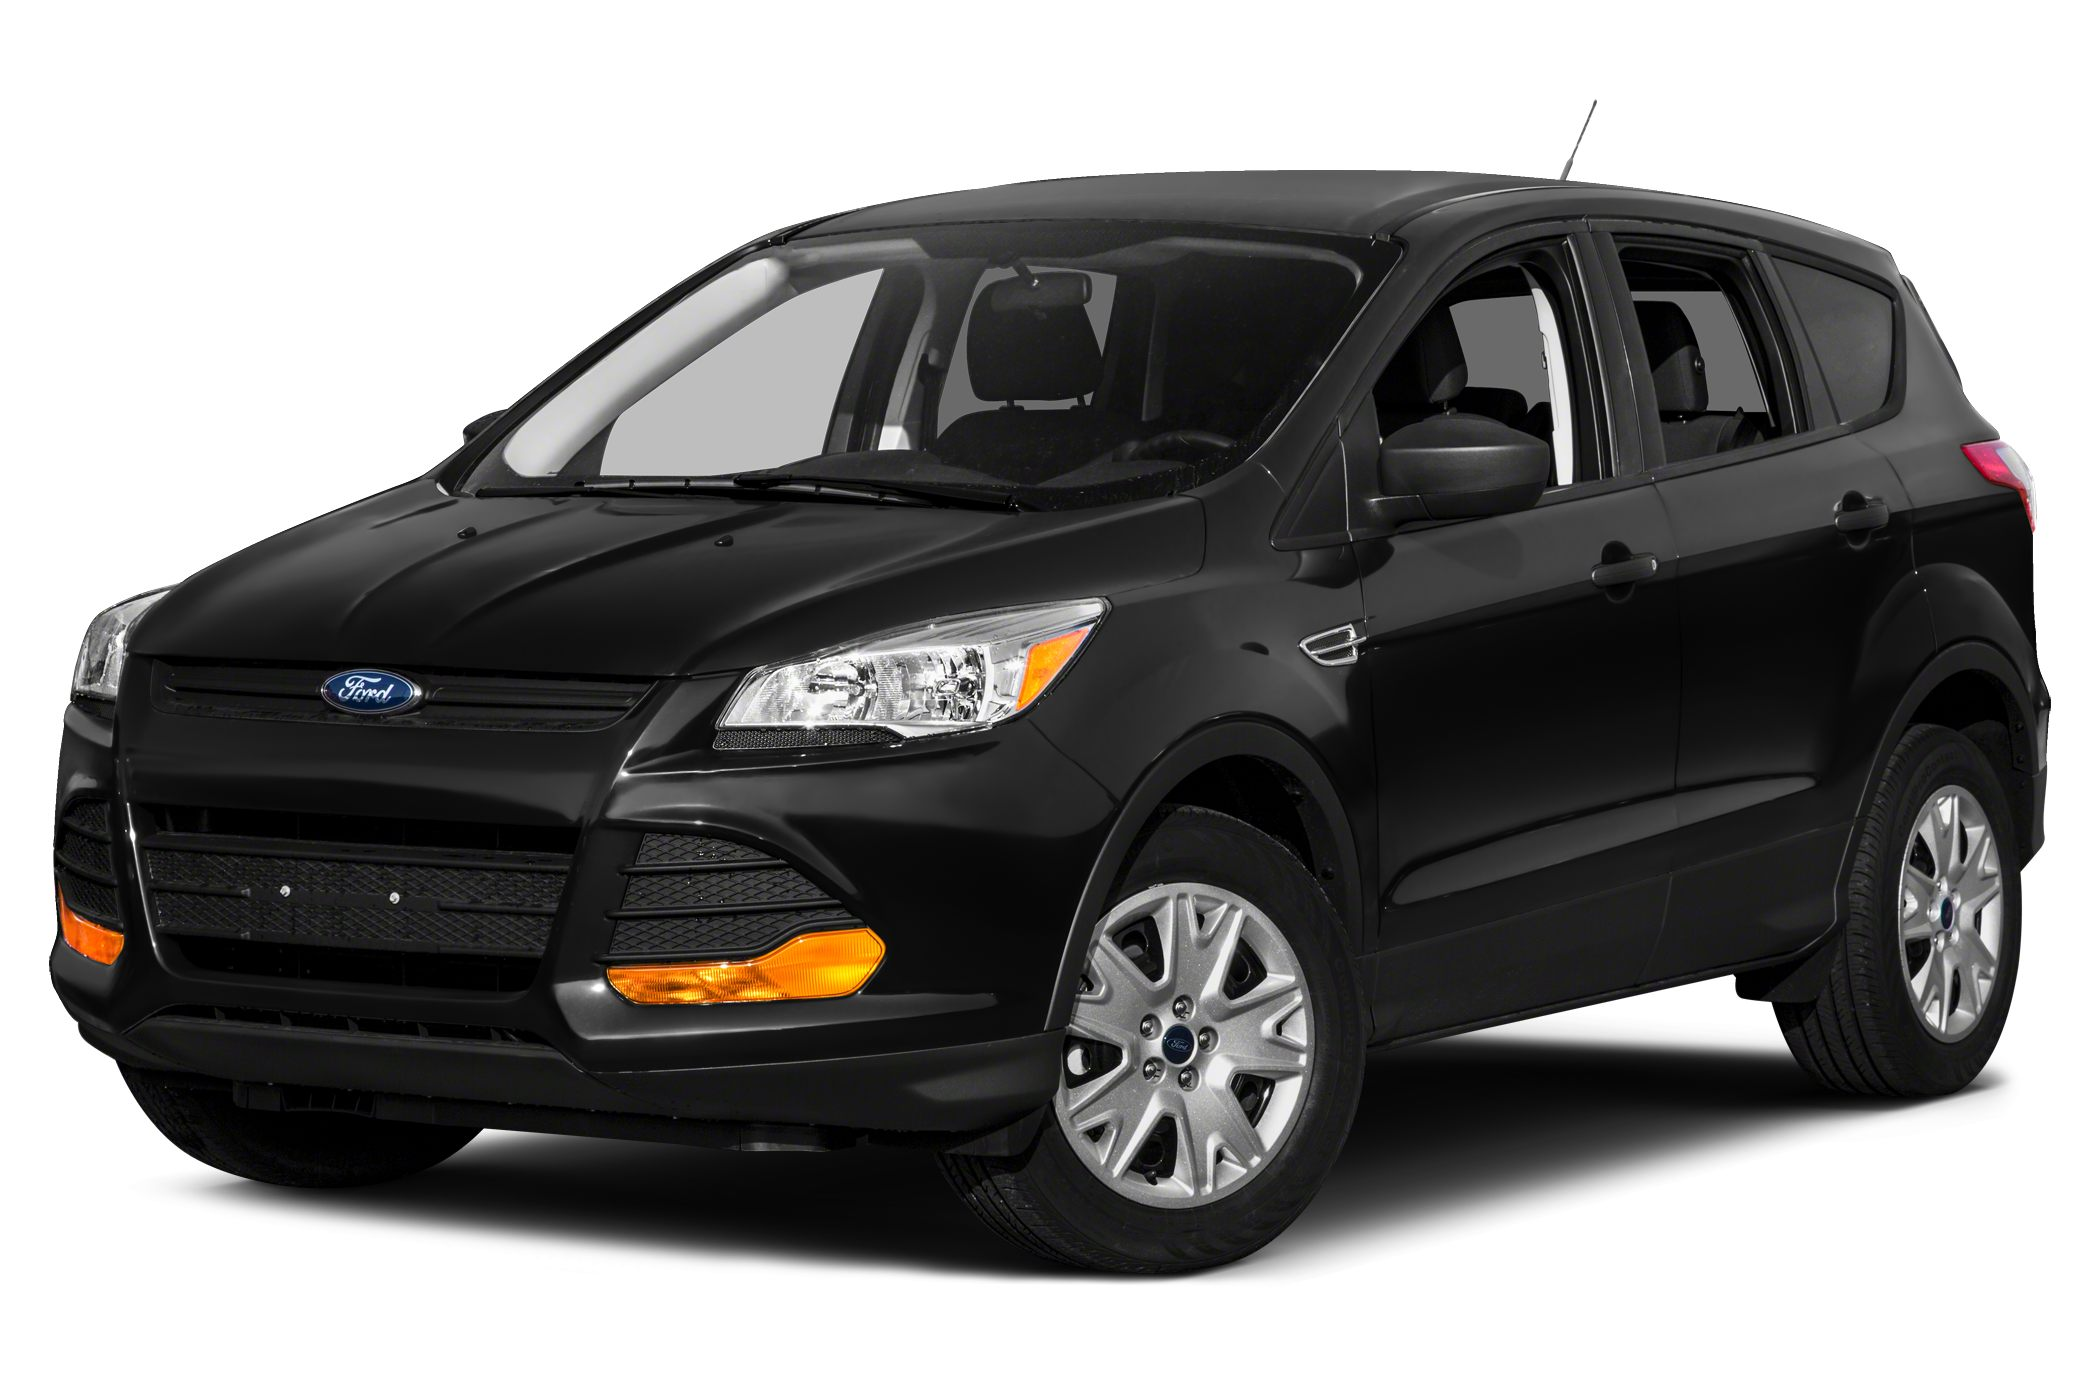 2013 Ford Escape Titanium SUV for sale in Cullman for $17,000 with 87,055 miles.